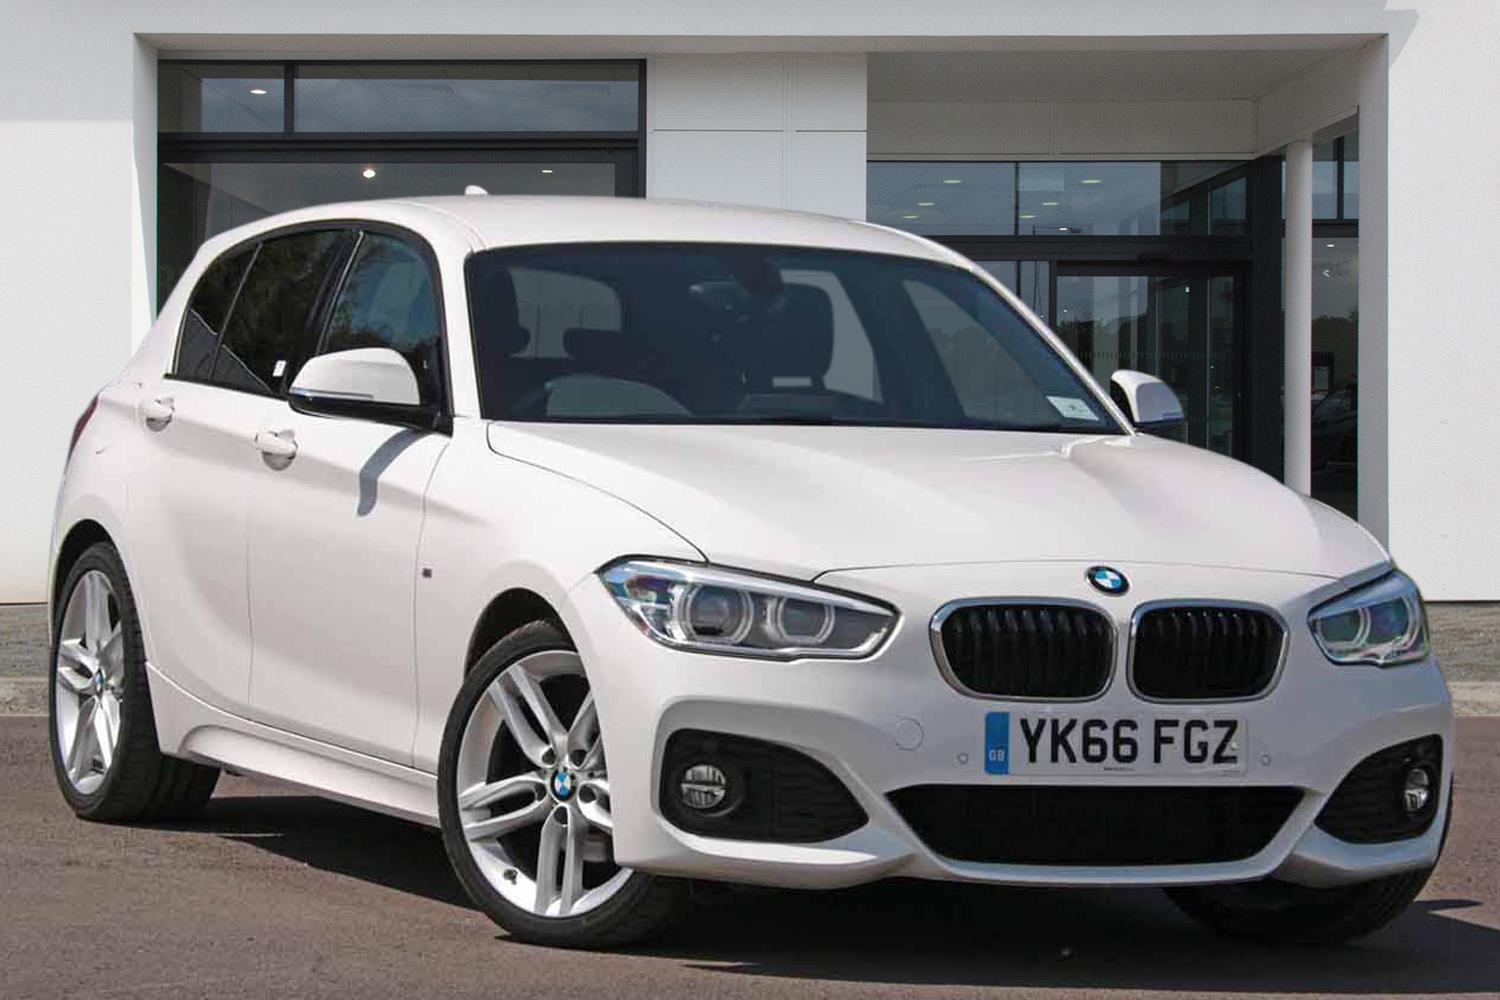 BMW 1 Series 5-door Sports Hatch YK66FGZ - Image 3